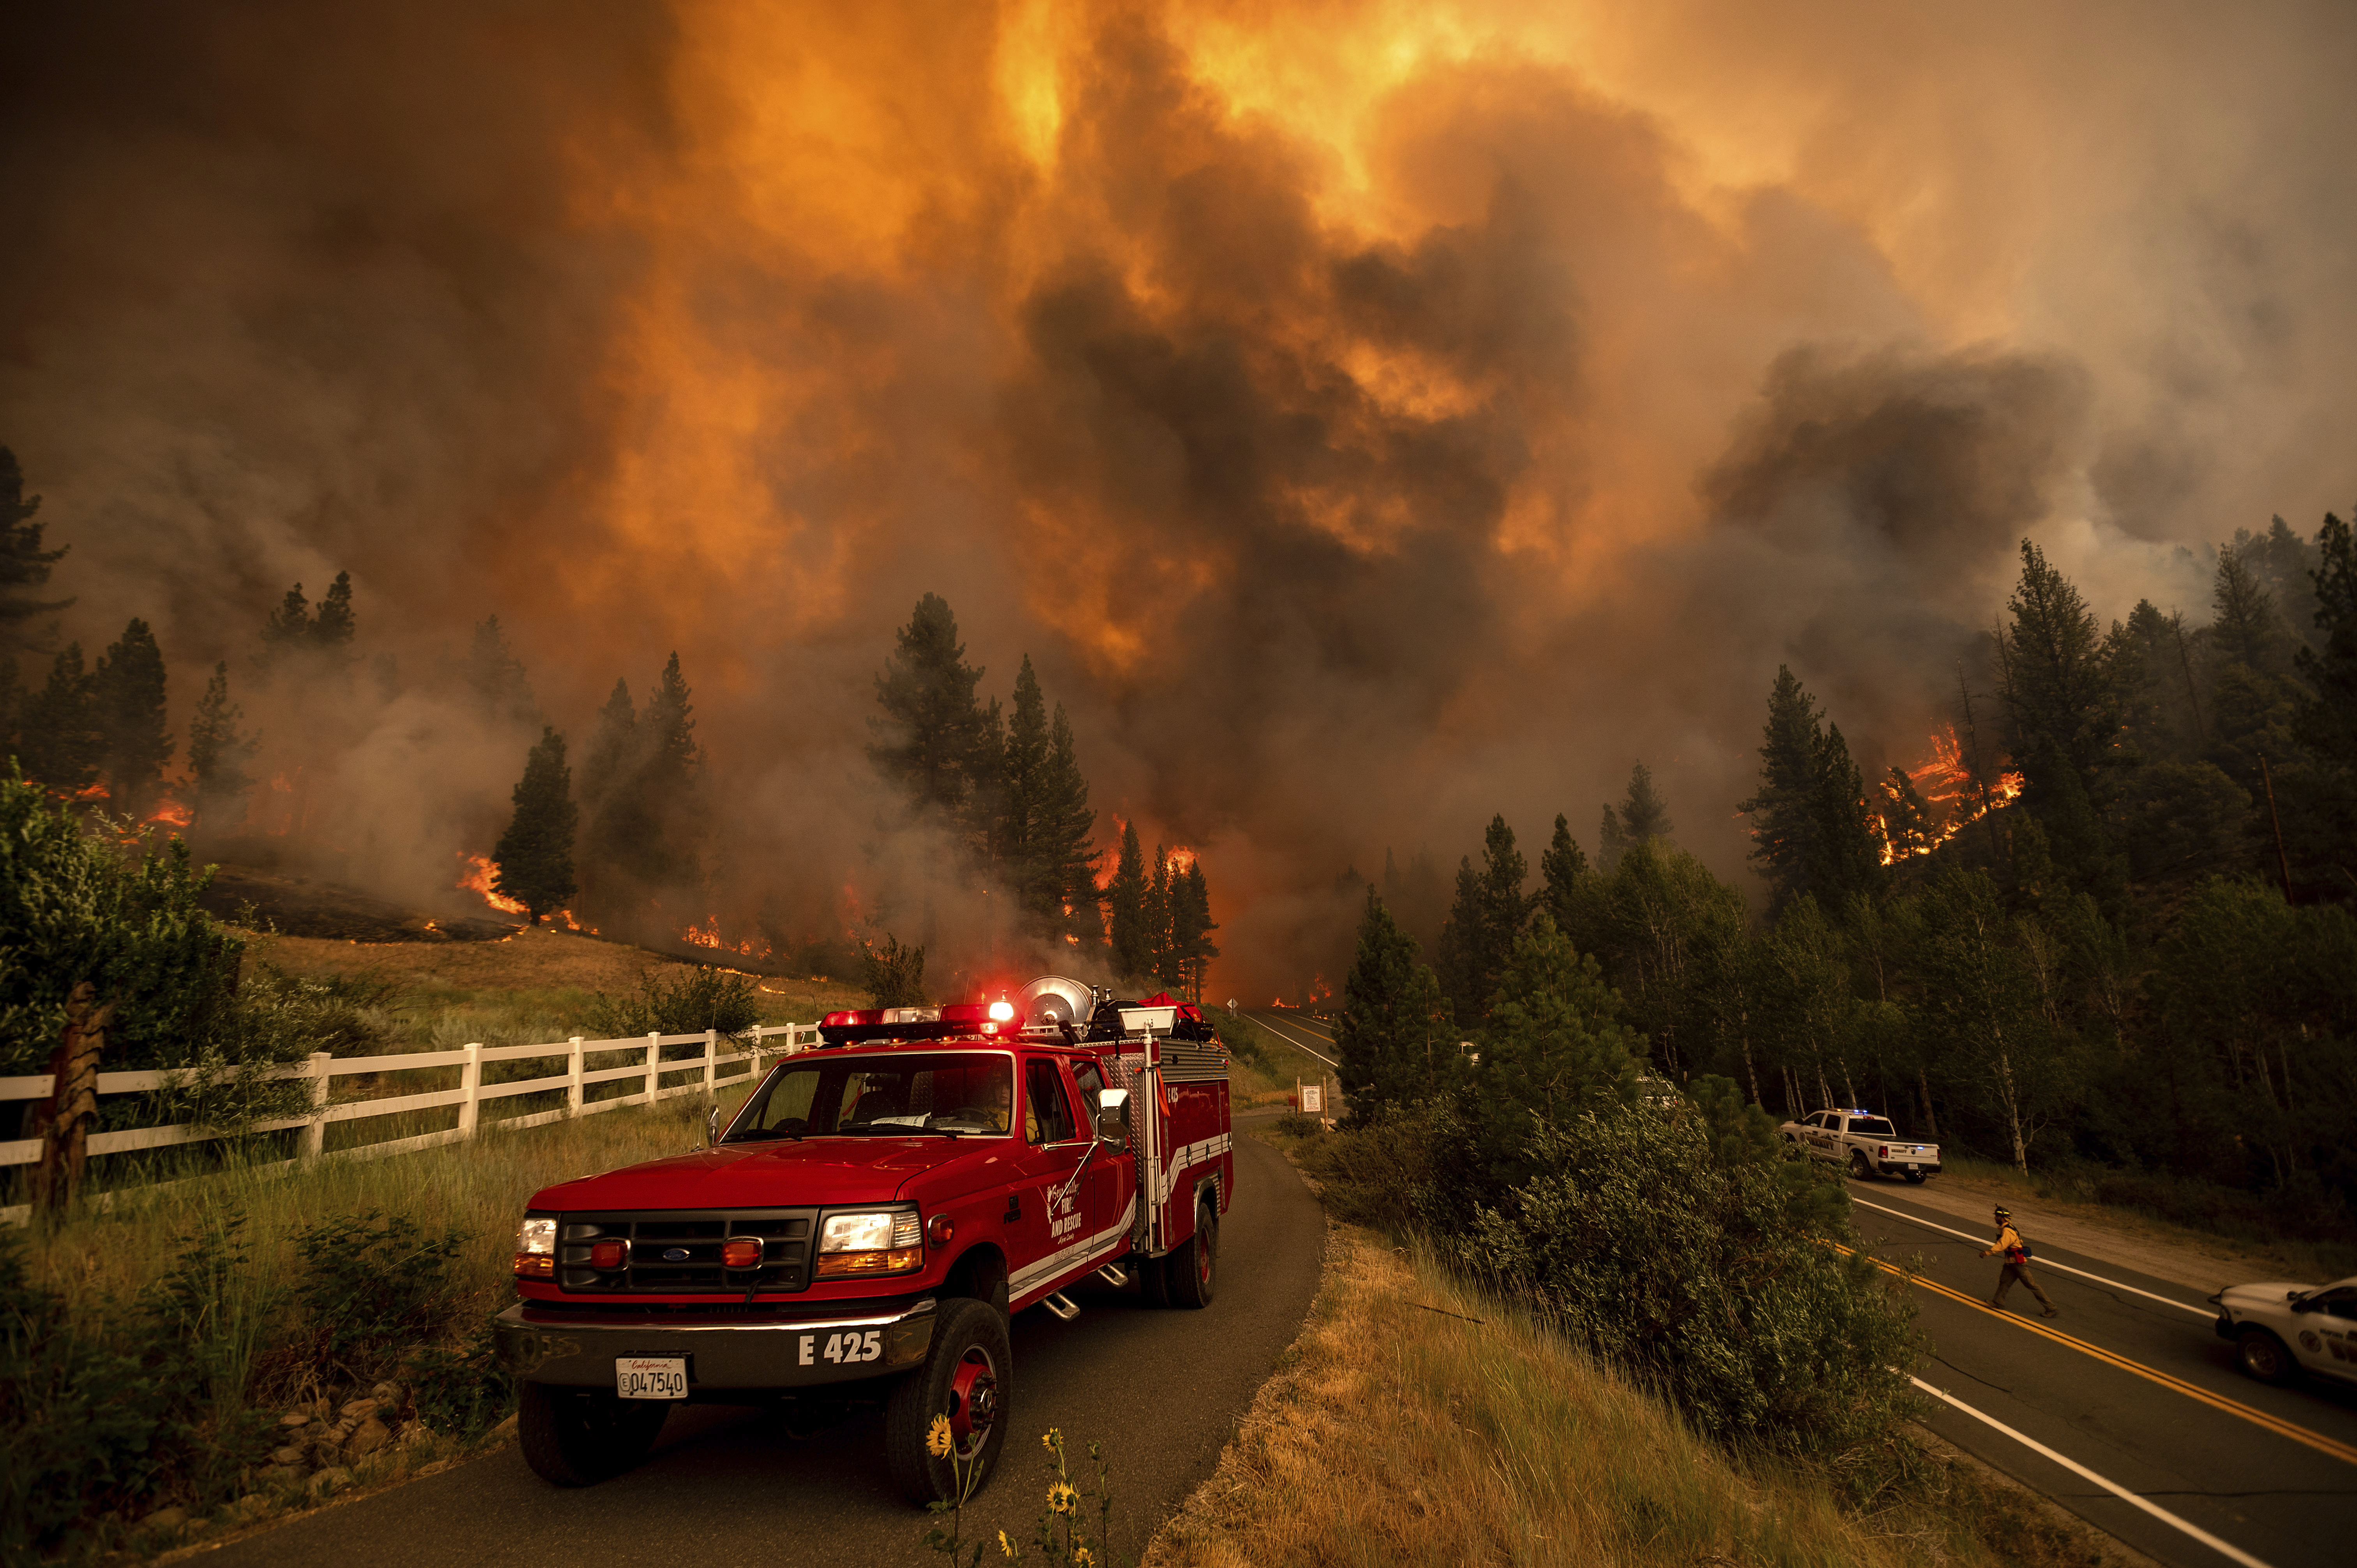 Firefighters battle the Tamarack Fire in the Markleeville community of Alpine County, Calif., on Saturday, July 17, 2021.